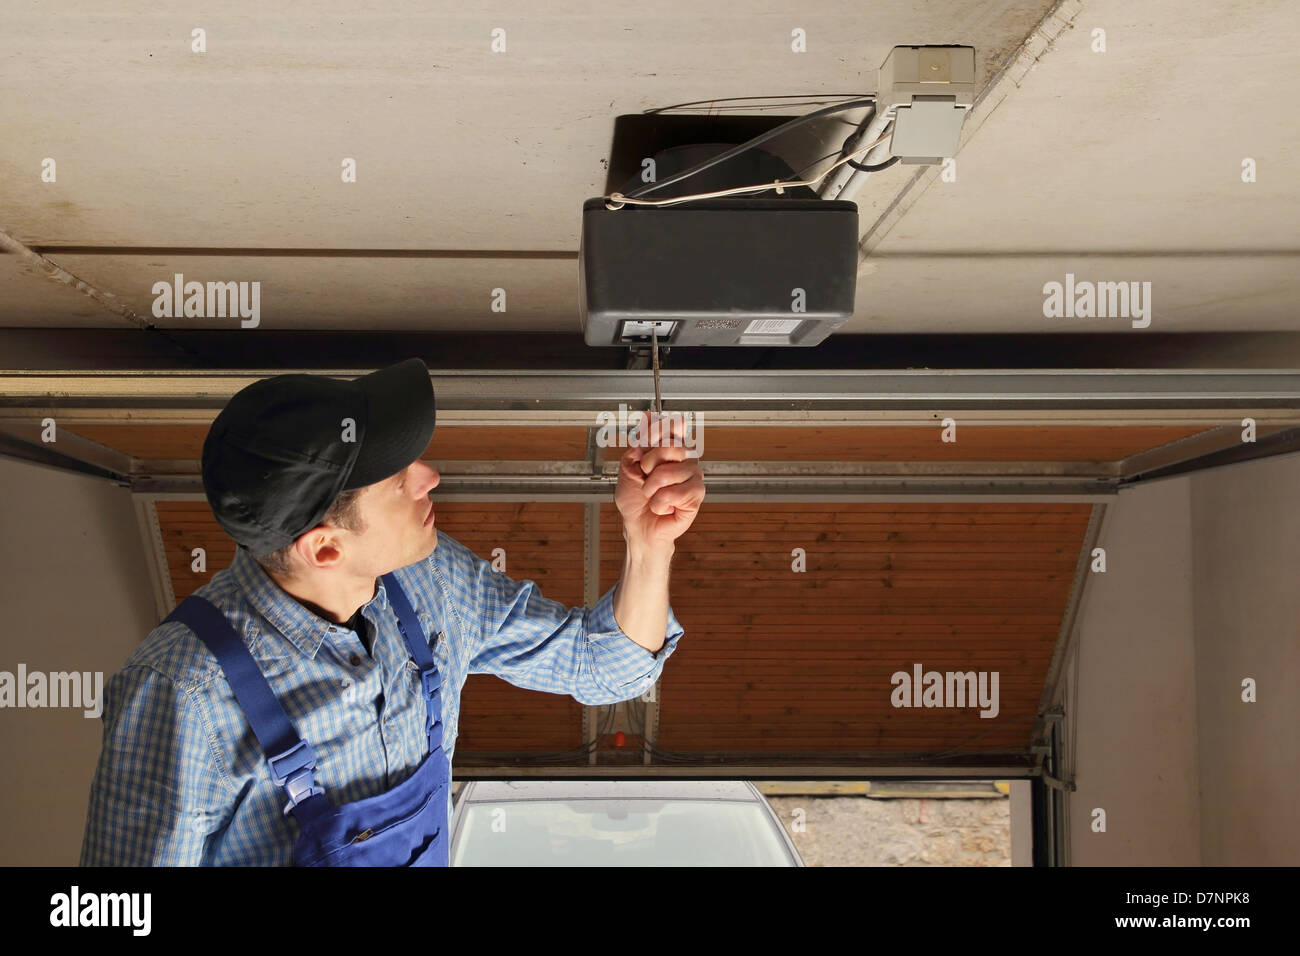 Garage Door Opener High Resolution Stock Photography And Images Alamy